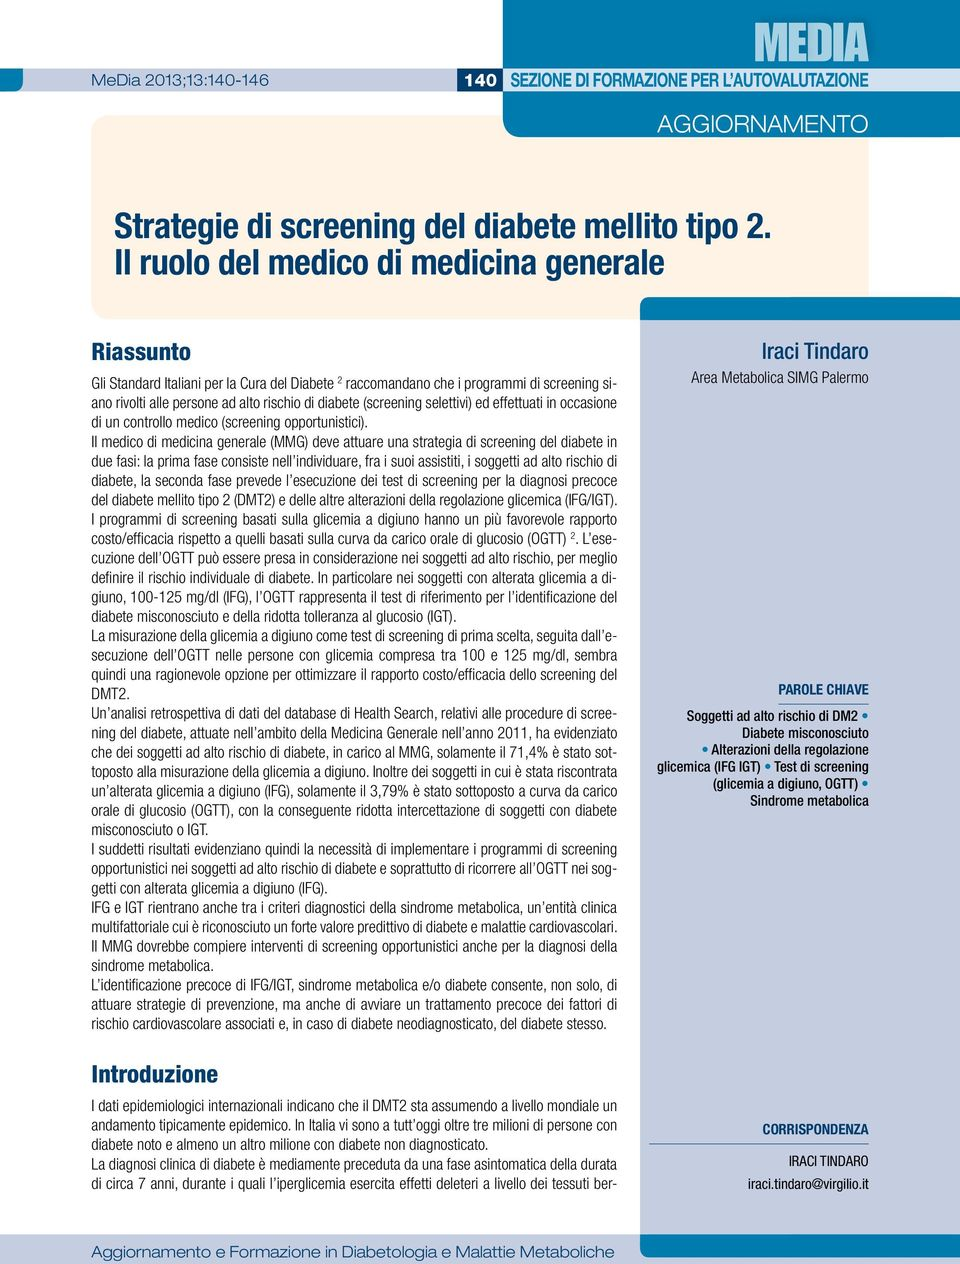 (screening selettivi) ed effettuati in occasione di un controllo medico (screening opportunistici).